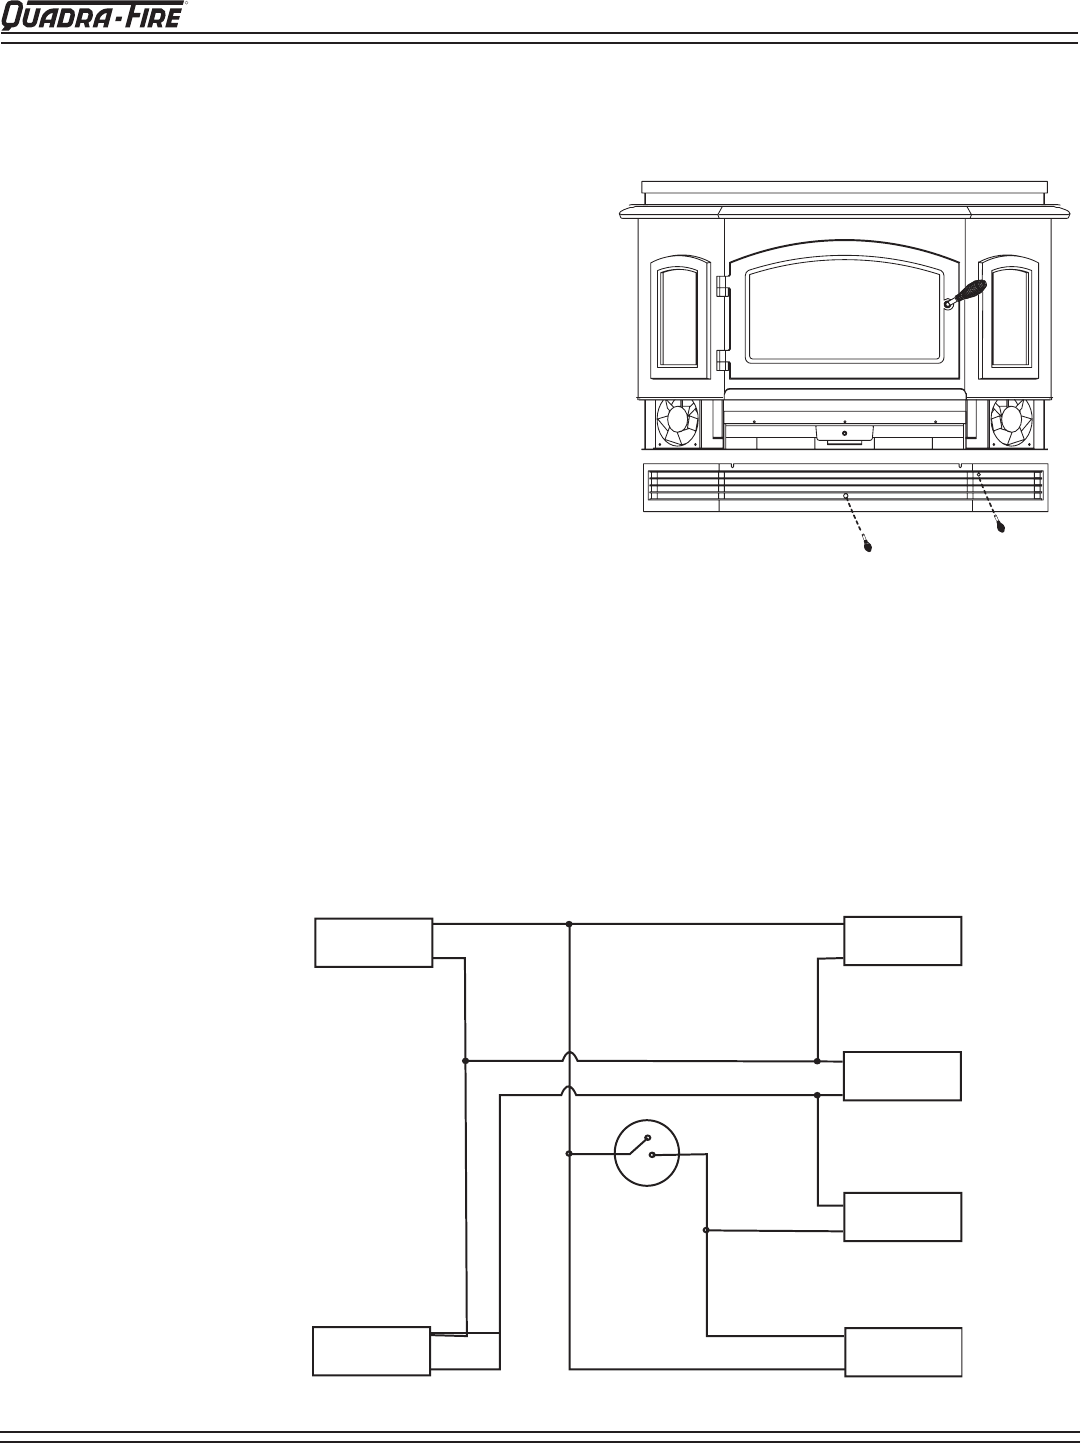 hearth and home technologies 5100-i blower replacement instructions, wiring  diagram  manuals